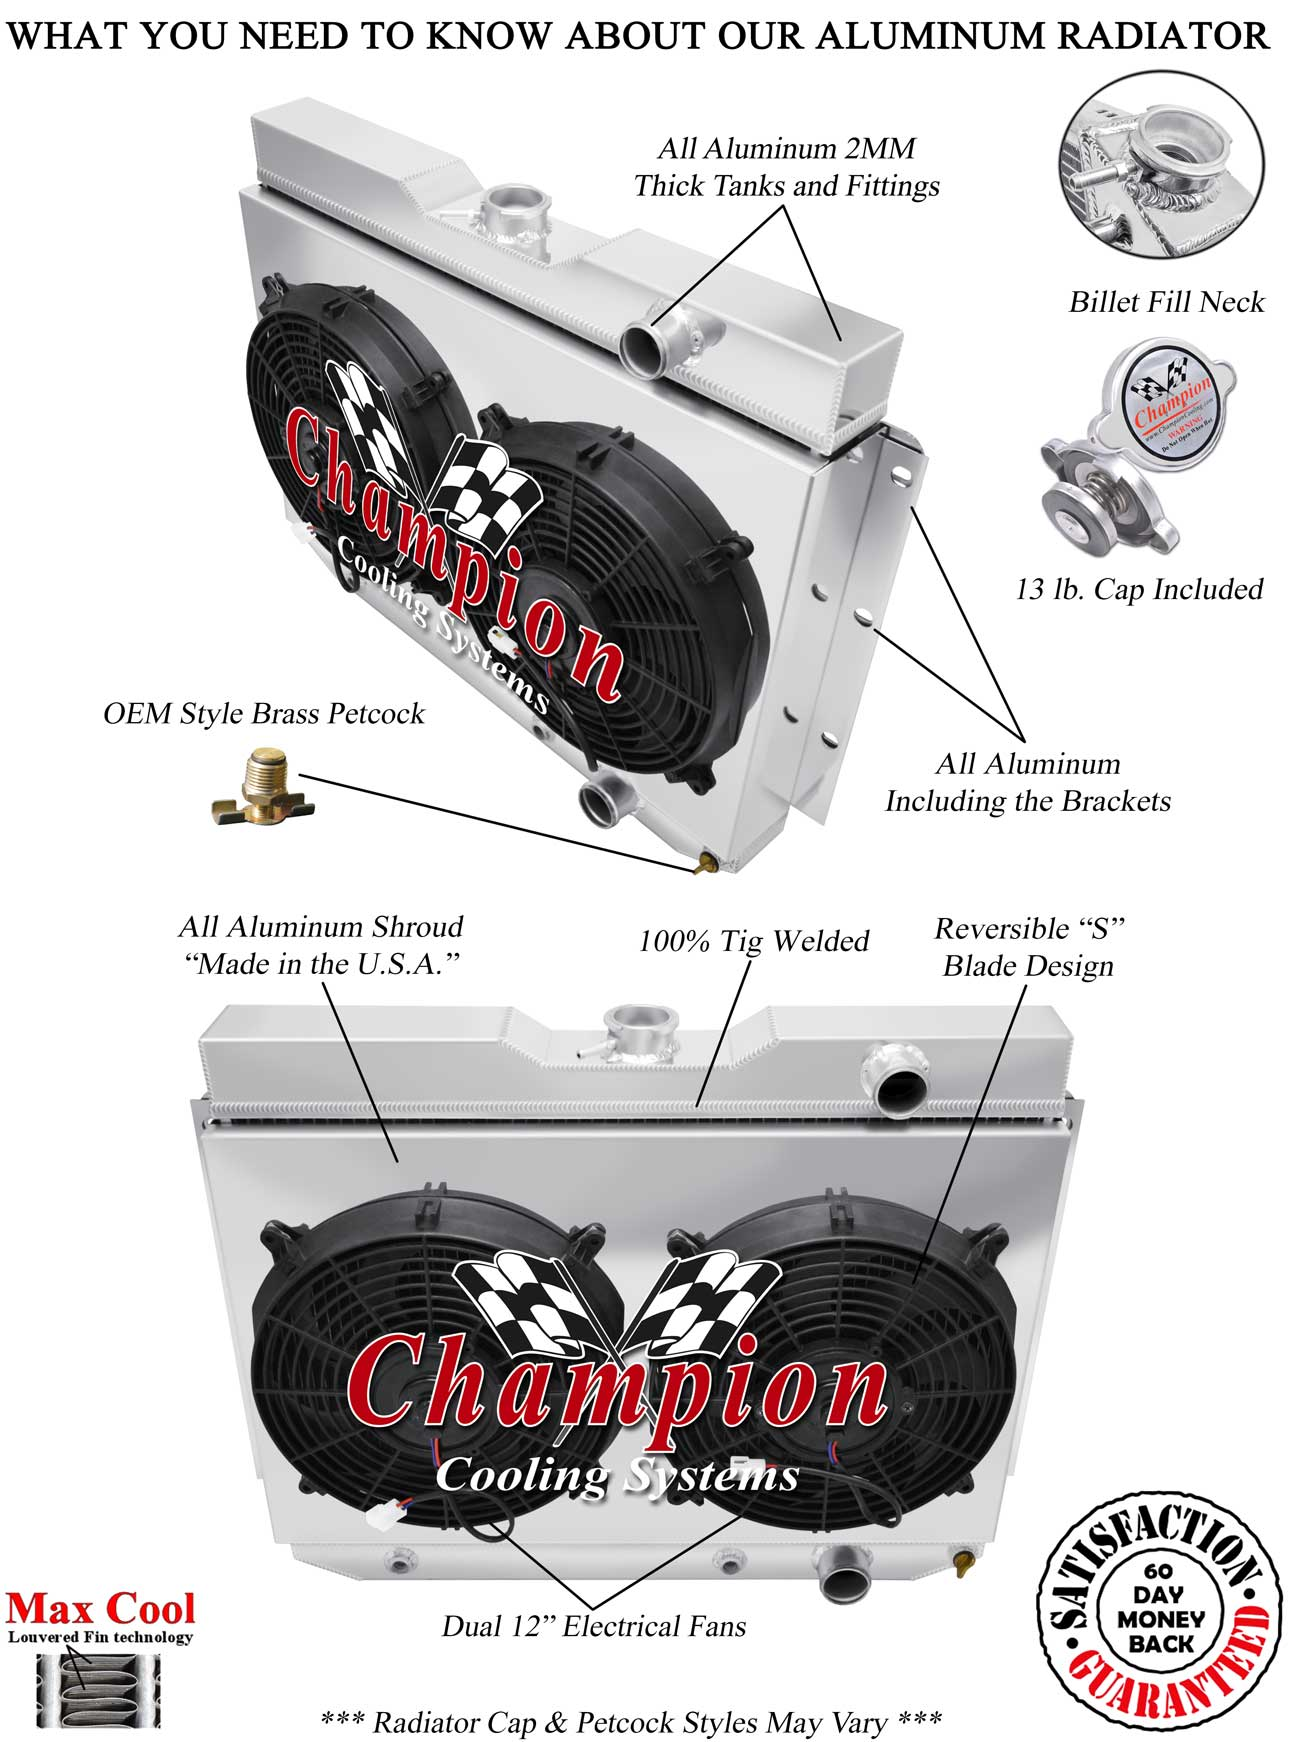 https://www.championcooling.com/photos/Photos%20White/With%20Fans/W-Shroud/281/281_Combo003.jpg